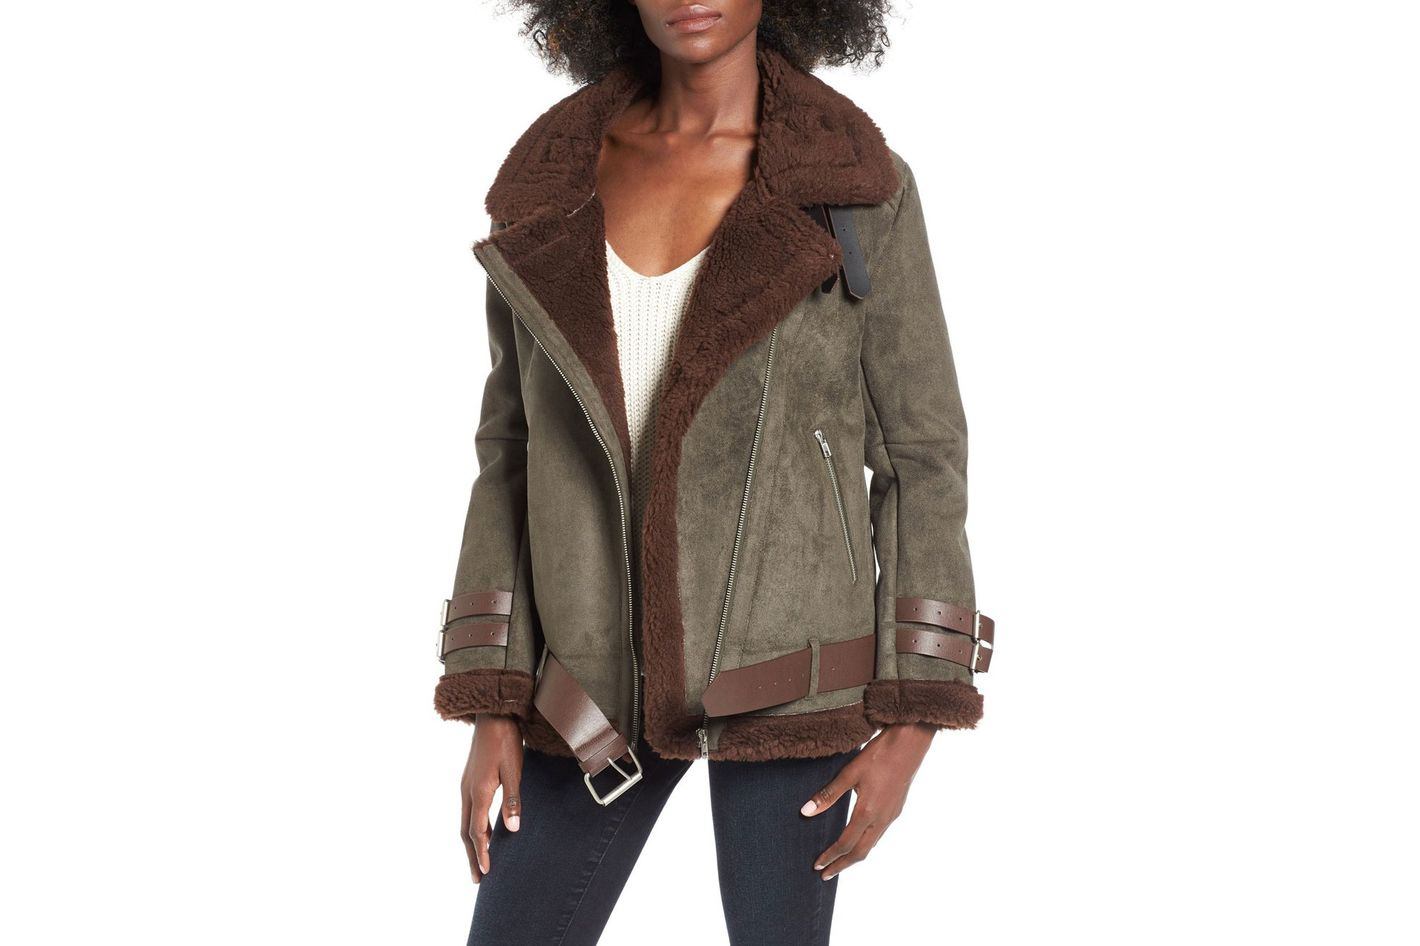 J.O.A. Faux Shearling Jacket